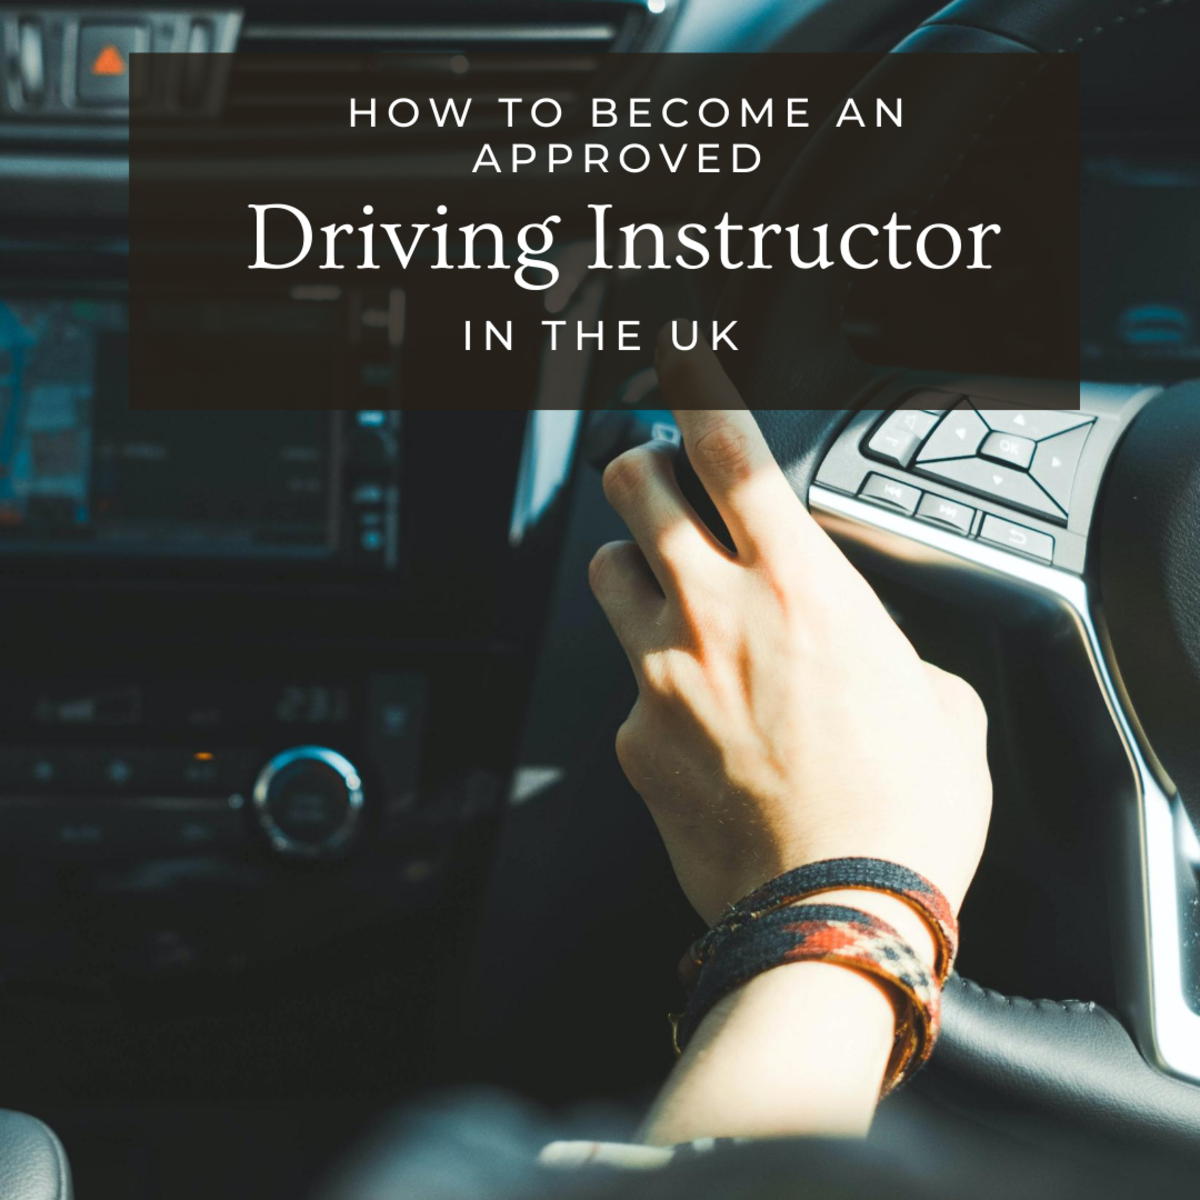 How to Become an Approved Driving Instructor in the UK